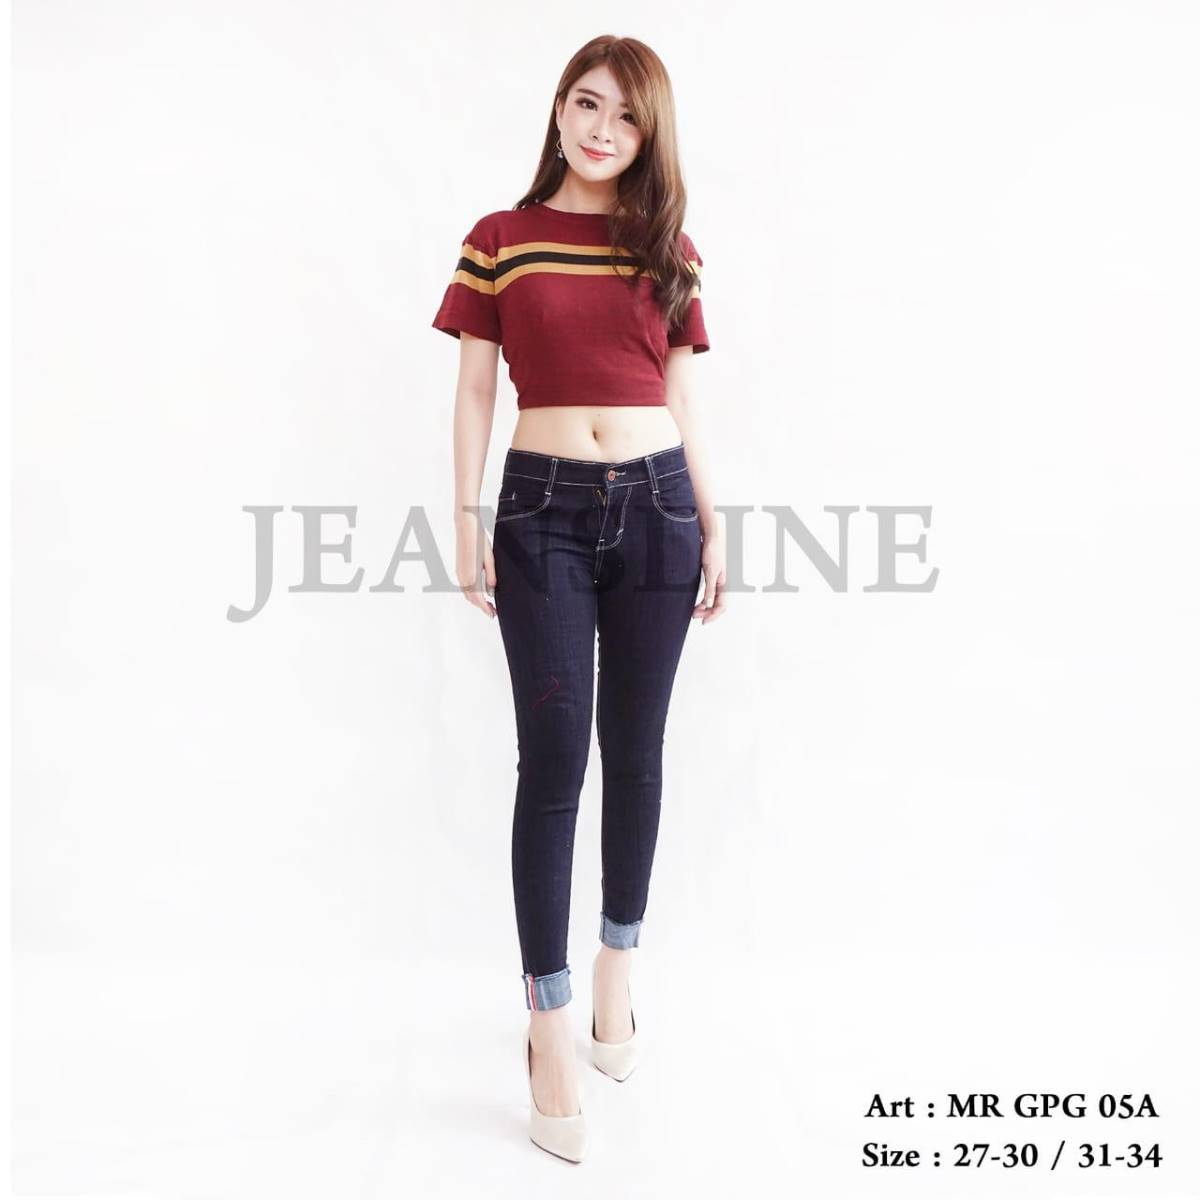 Celana Panjang Jeans Ladies (mr Gpg 05a) - Size 31, 32, 33, 34